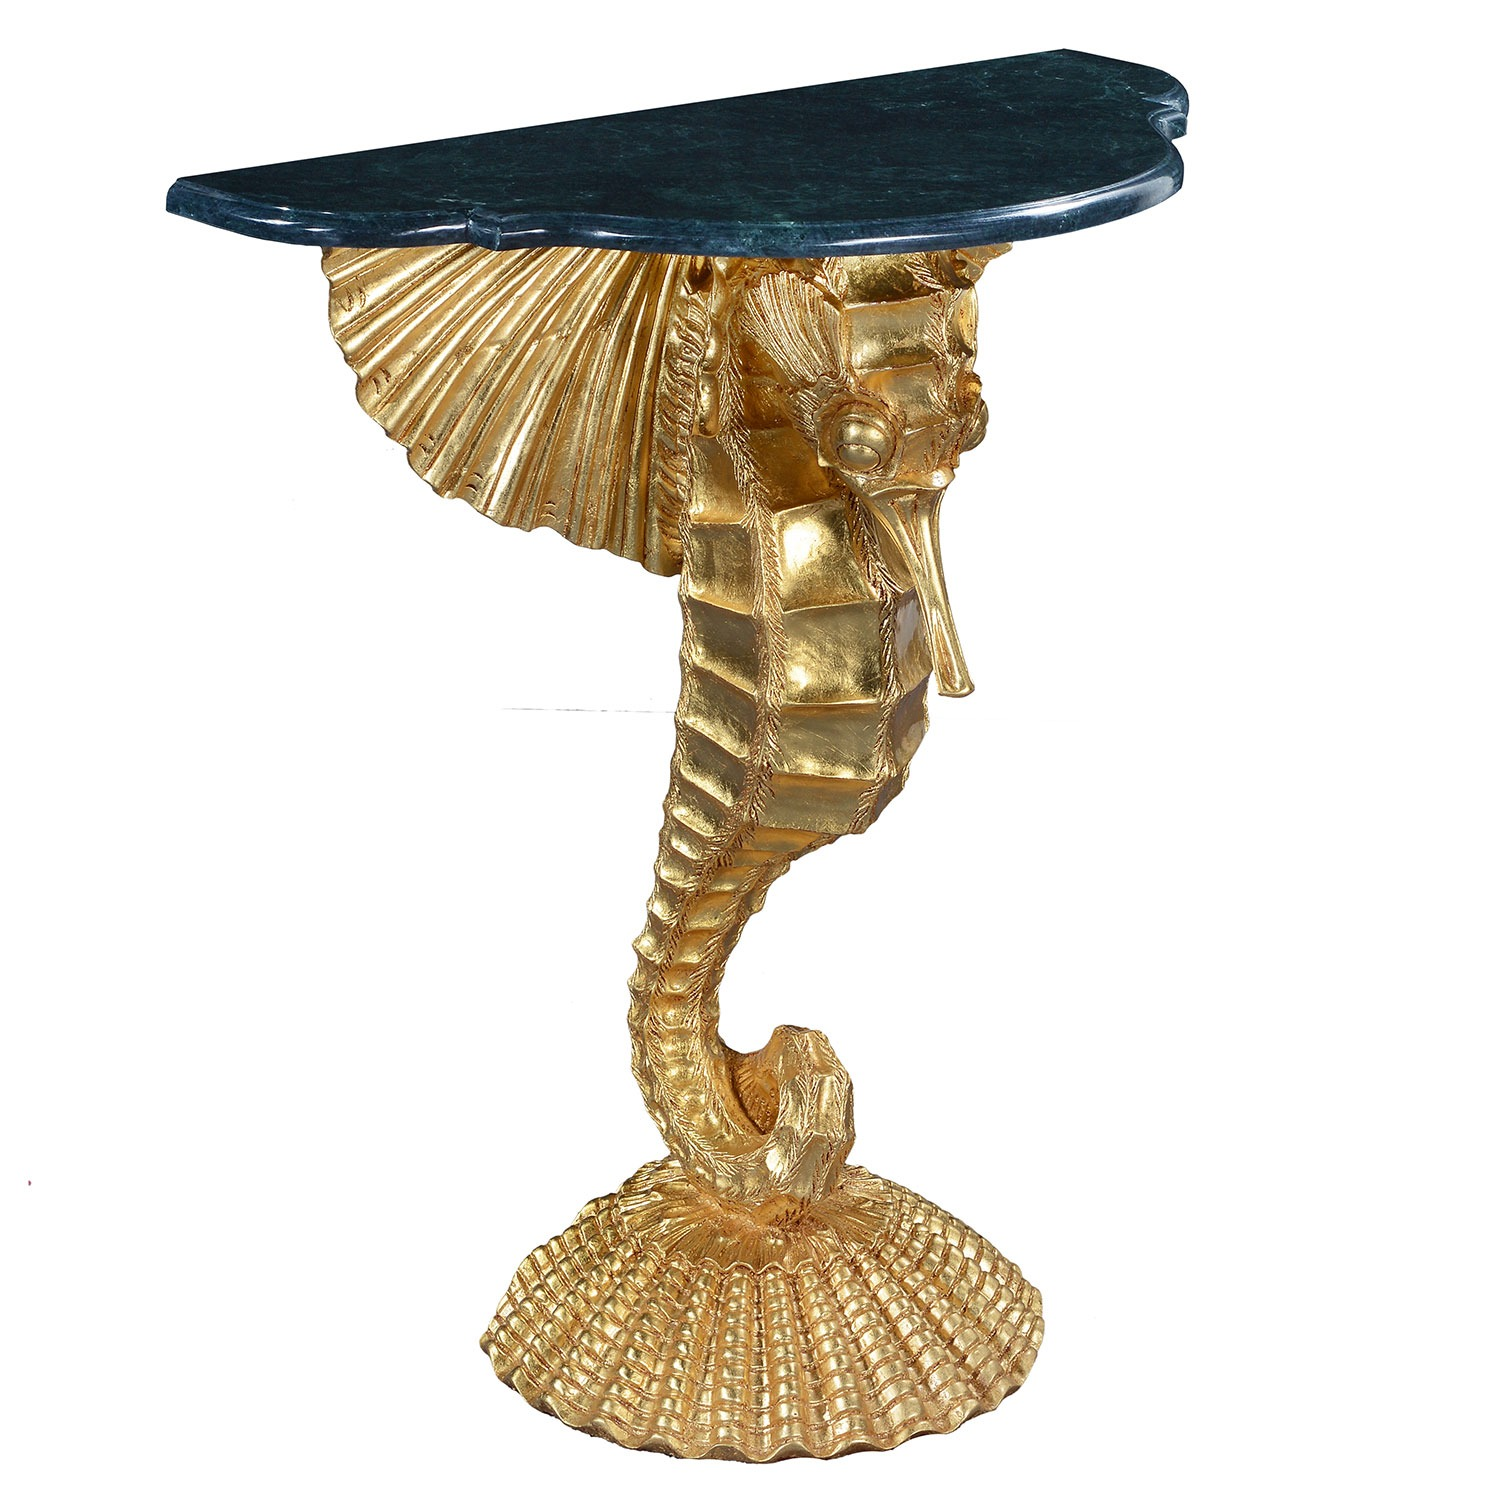 Seahorse console hall table - gold